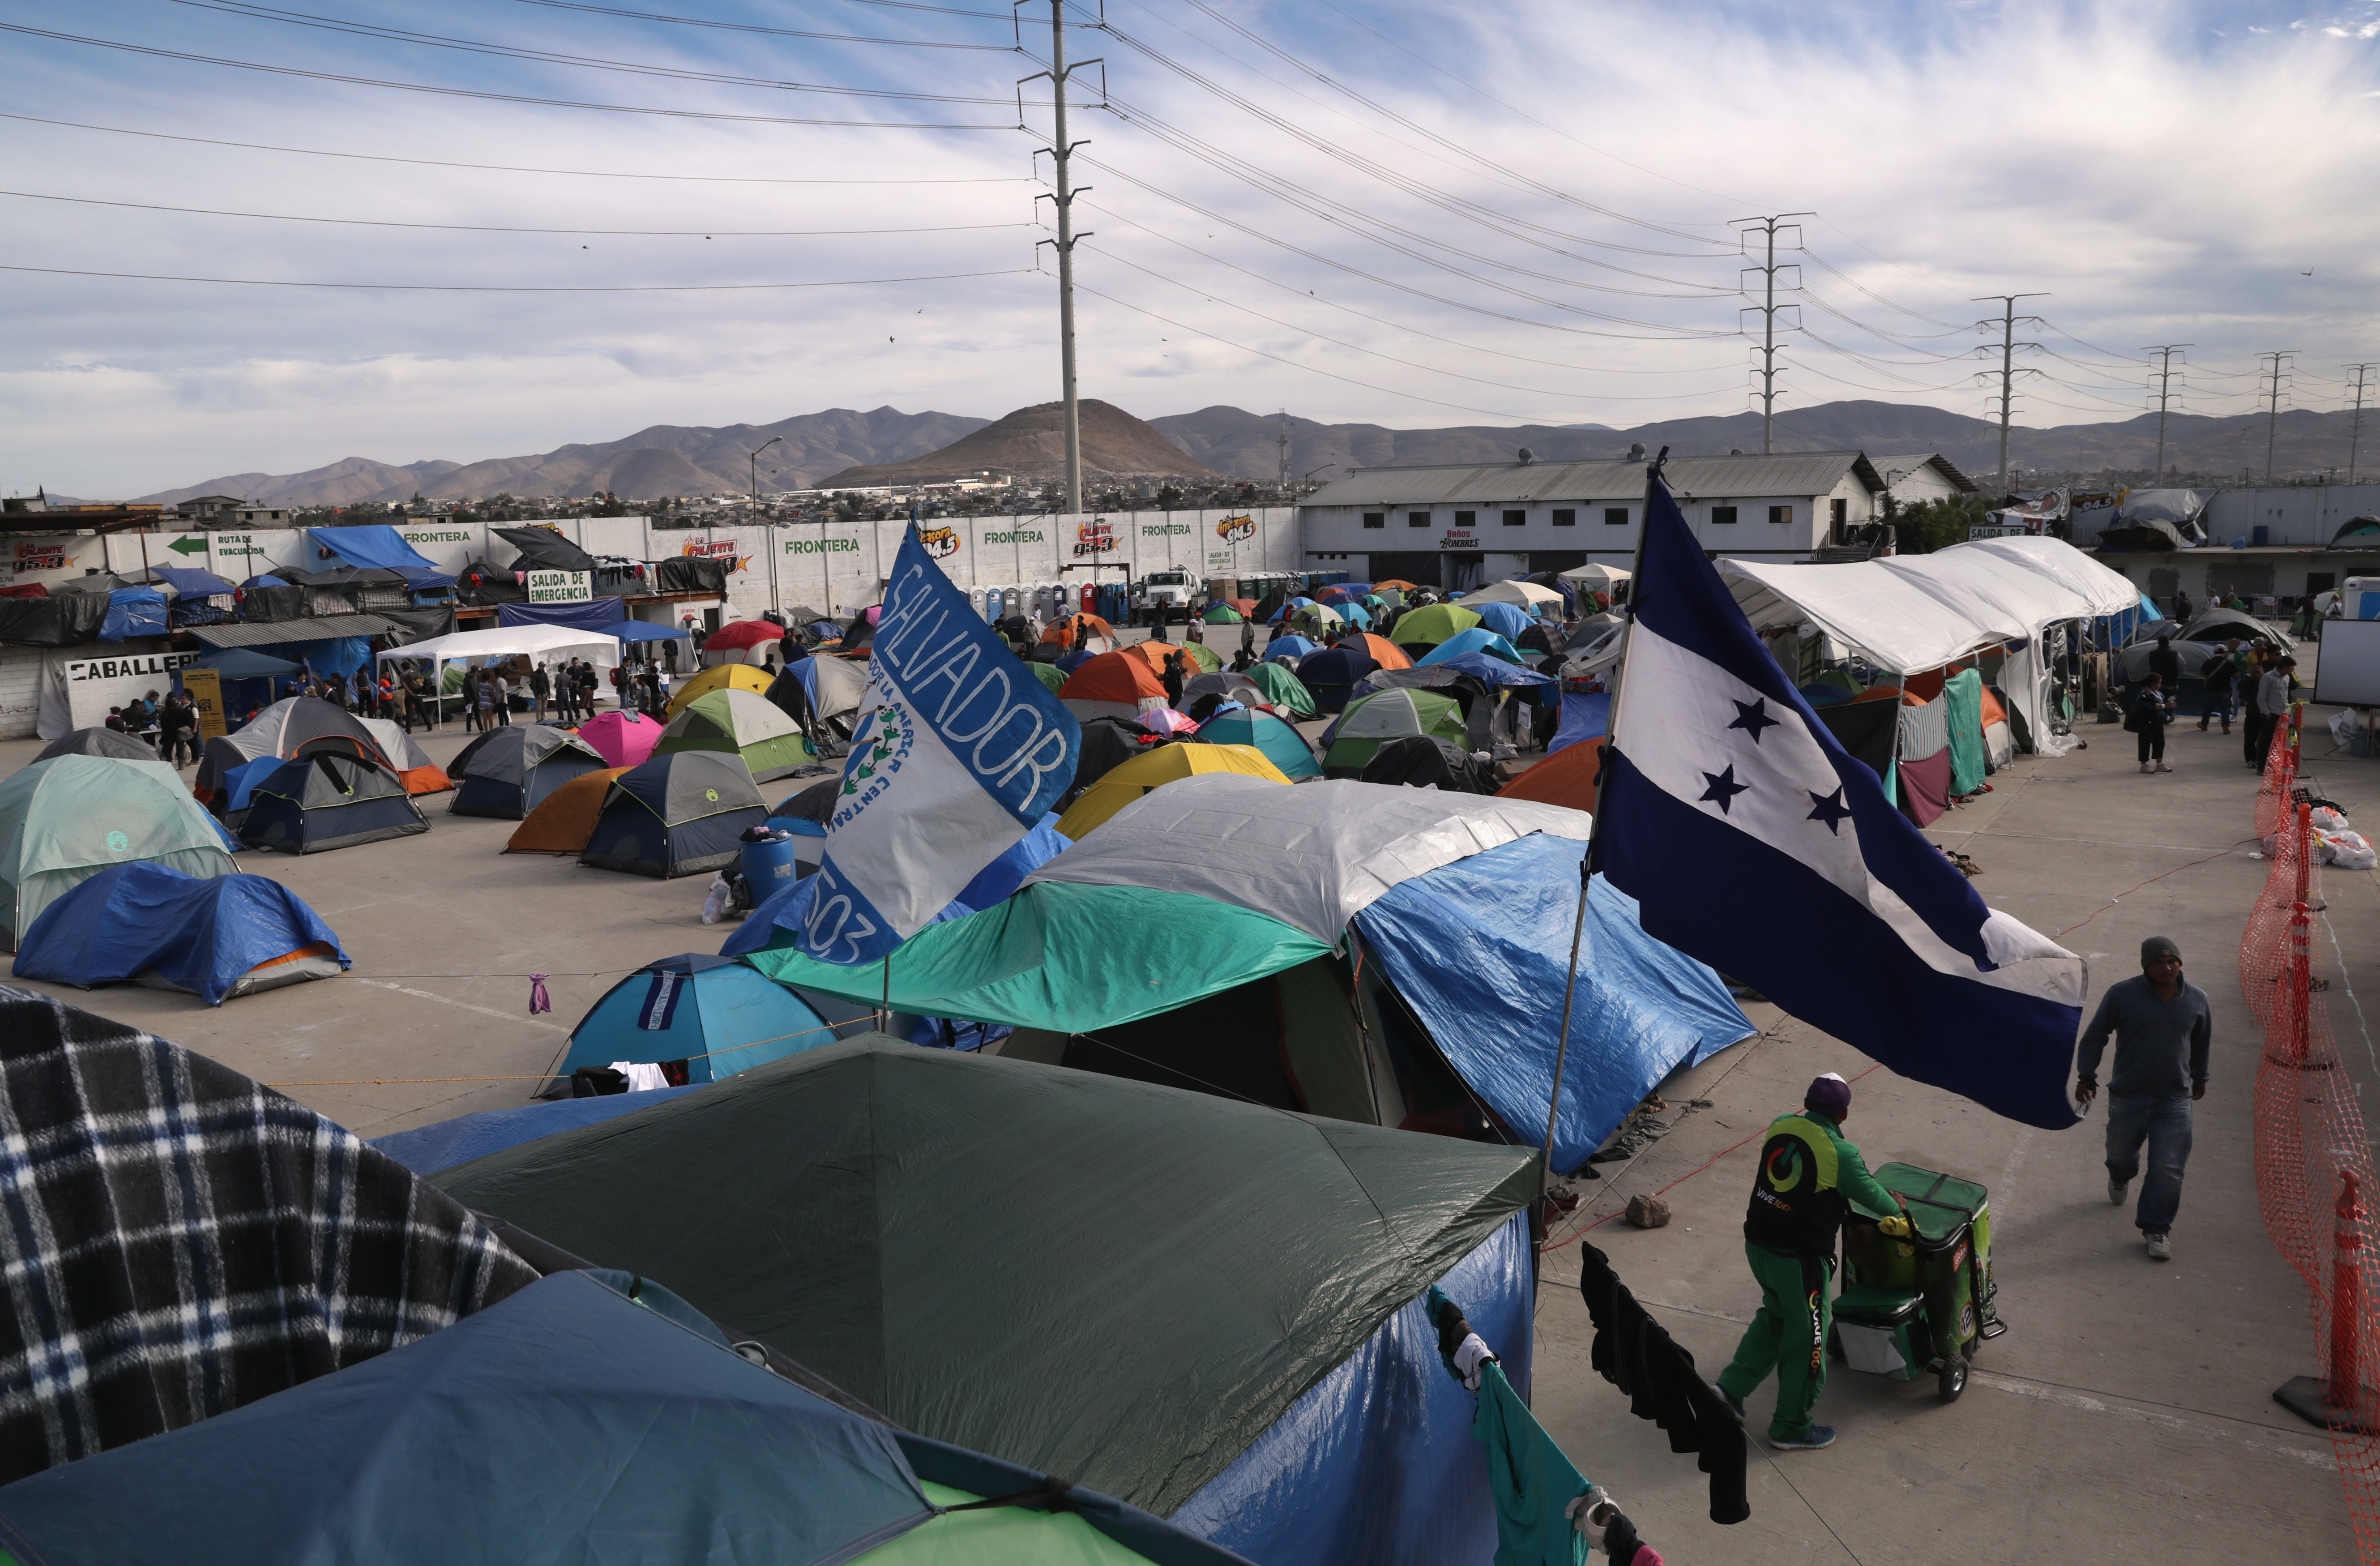 TIJUANA, MEXICO - DECEMBER 04:  Honduran and Salvadorian flags fly over the Barretal migrant caravan camp on December 4, 2018 from Tijuana, Mexico. After traveling more than 6 weeks from Central America, thousands of immigrants remain in Tijuana, many awaiting asylum interviews and others deciding whether to cross illegally into the United States. (Photo by John Moore/Getty Images)